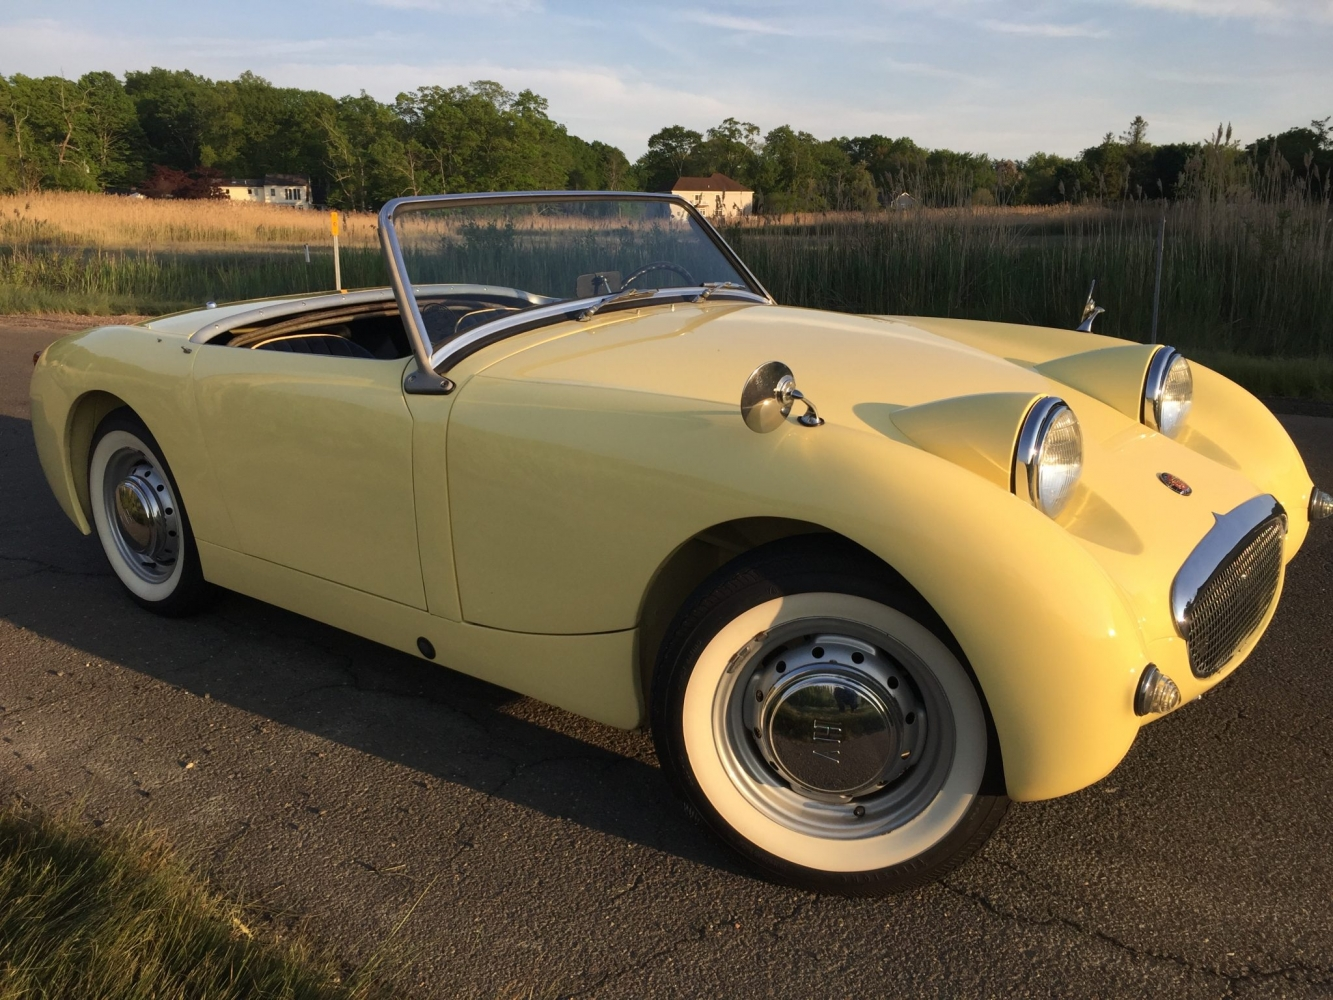 FIVE SPEED Primrose 1960 Austin Healey Bugeye Sprite for sale